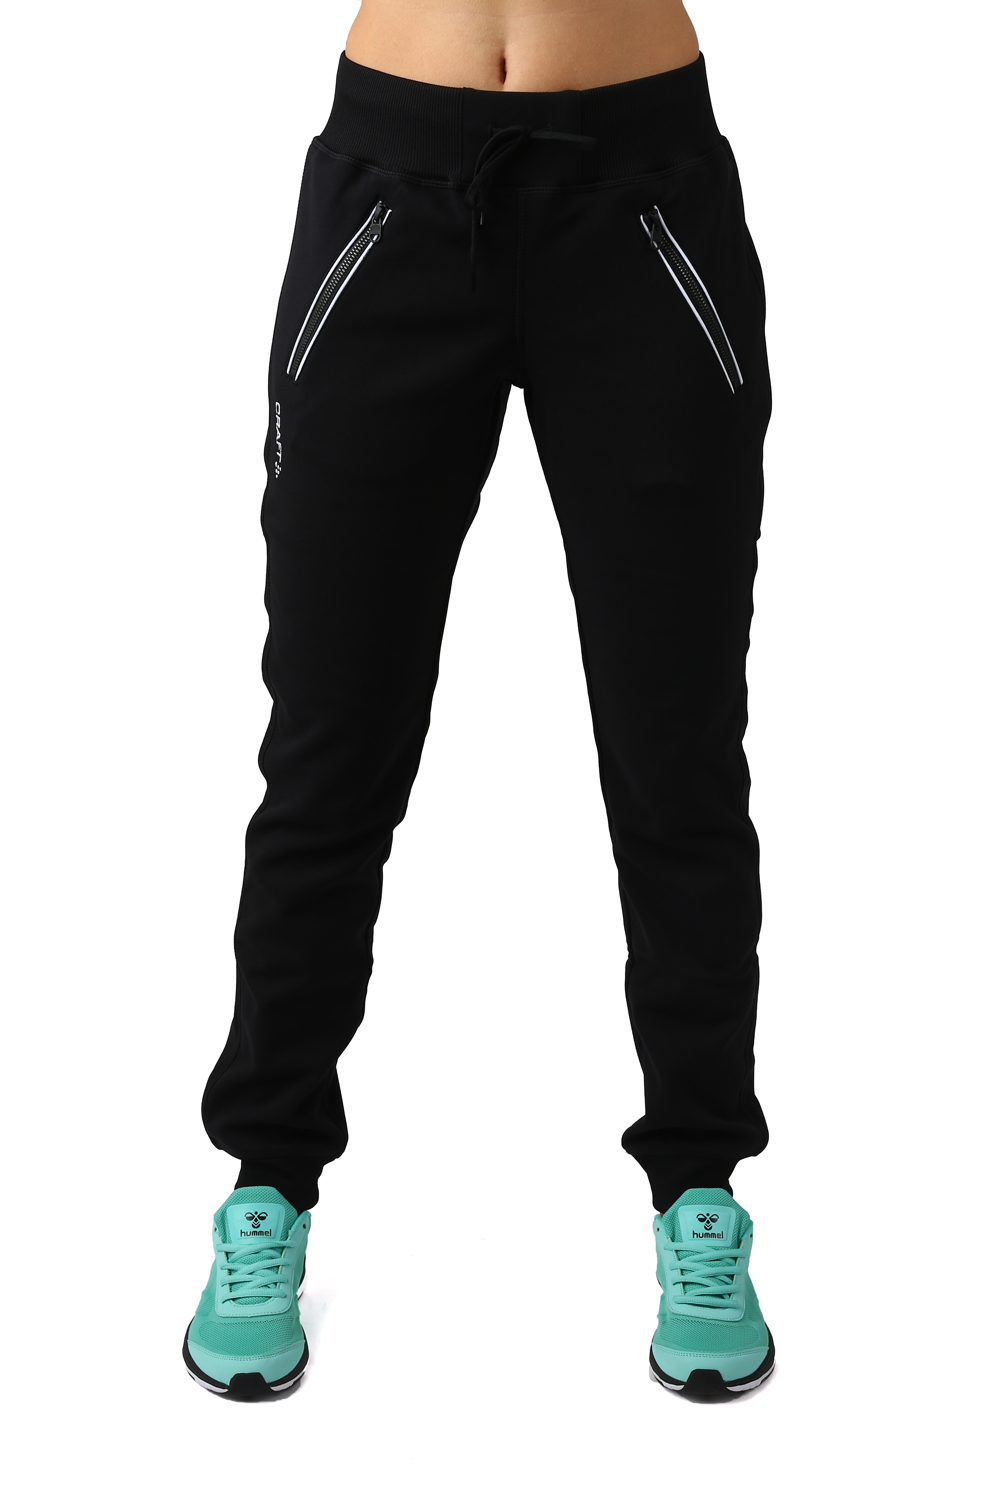 05687cdb Motehus AS - Craft - In The Zone Sweatpants W Black